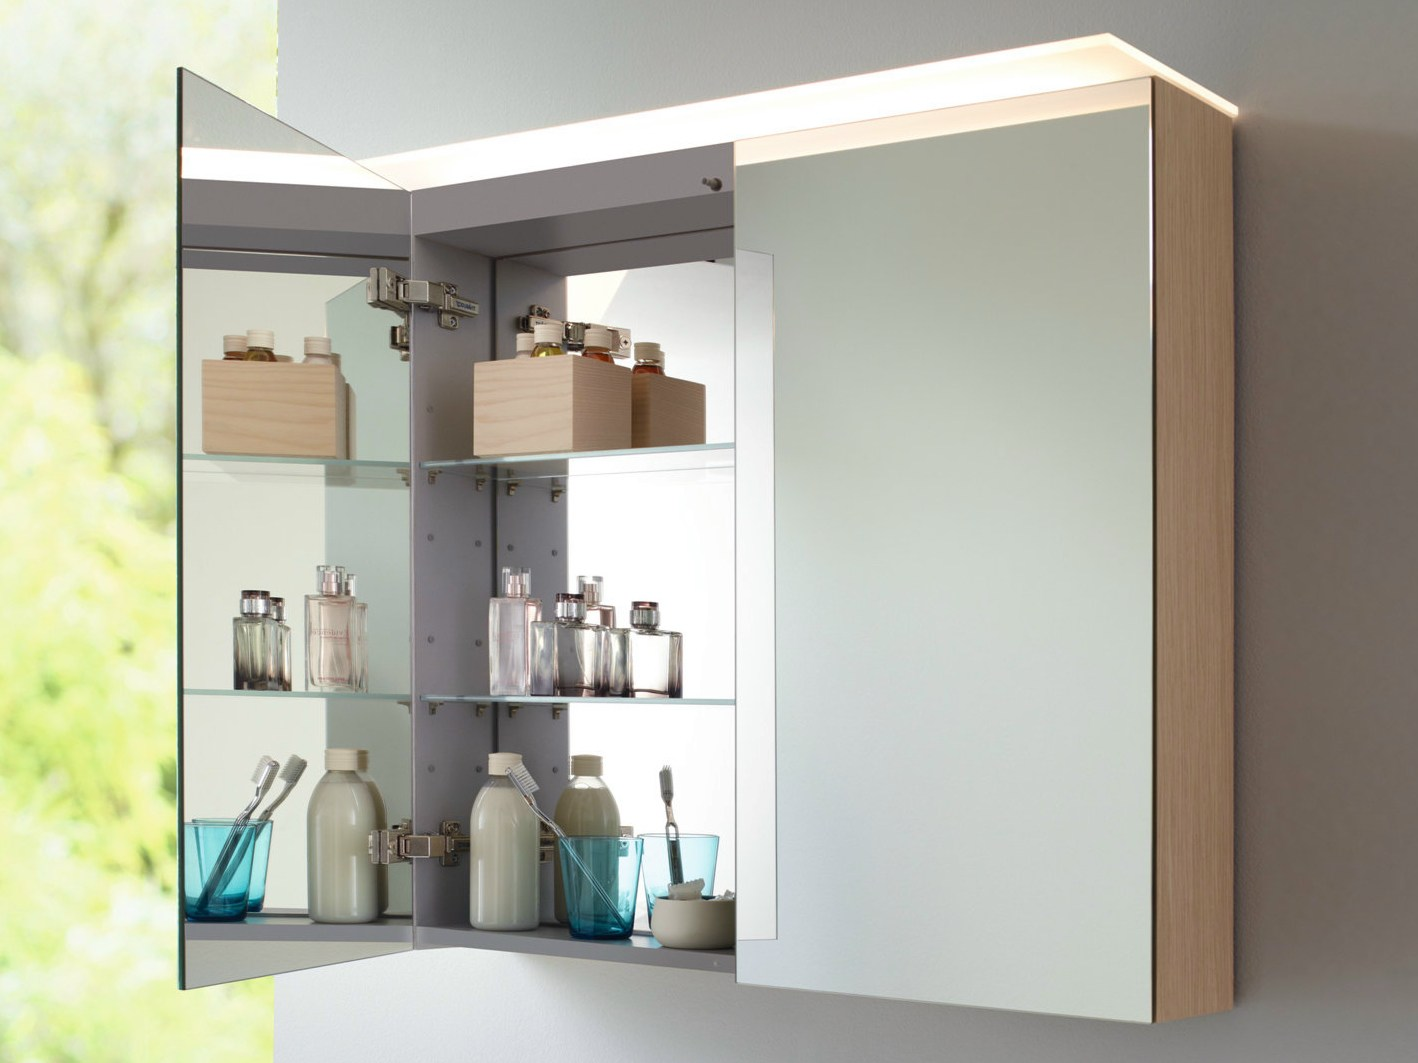 Mirrored Wall Cabinet Wall | Wall Cabinet With Mirrormakro